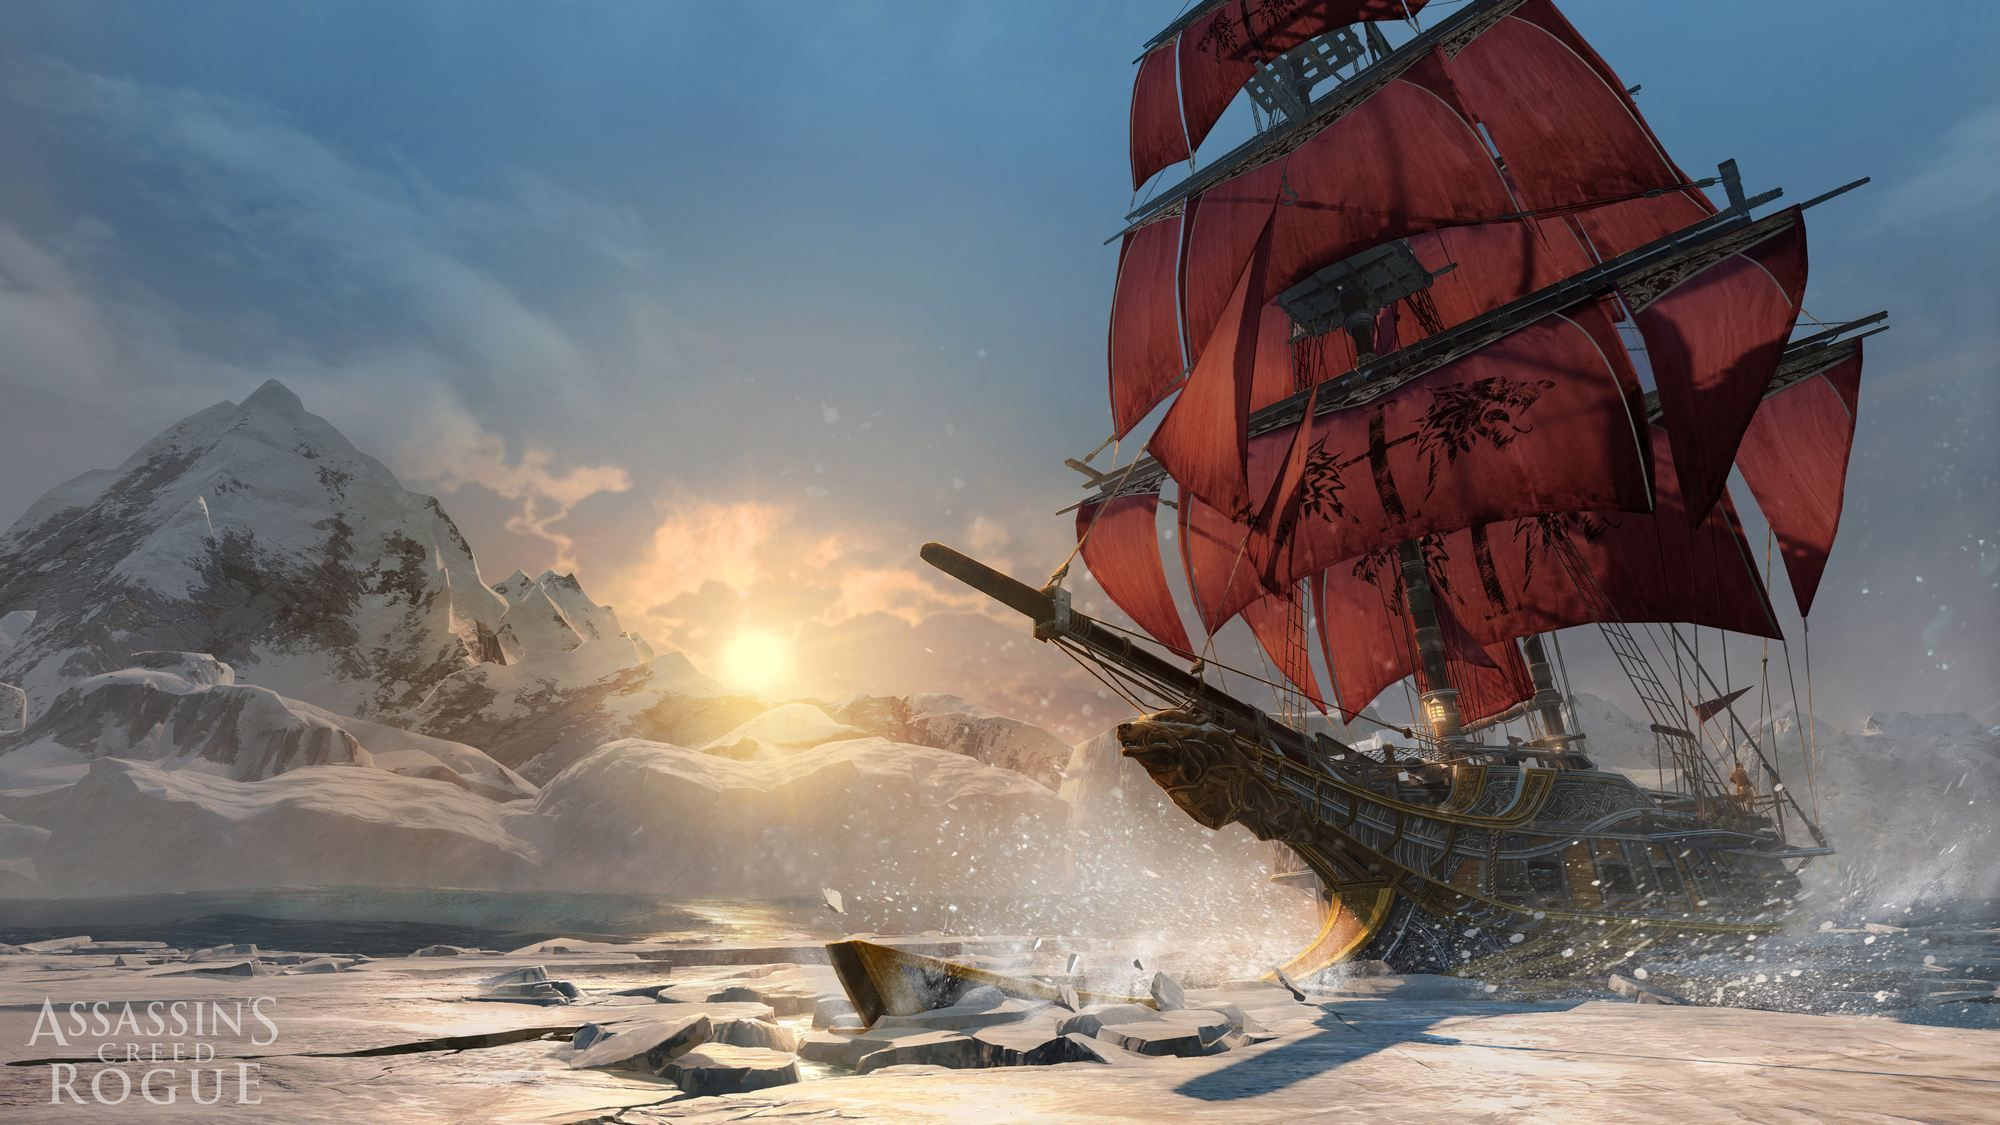 Assassin's Creed Rogue (PC) - 10